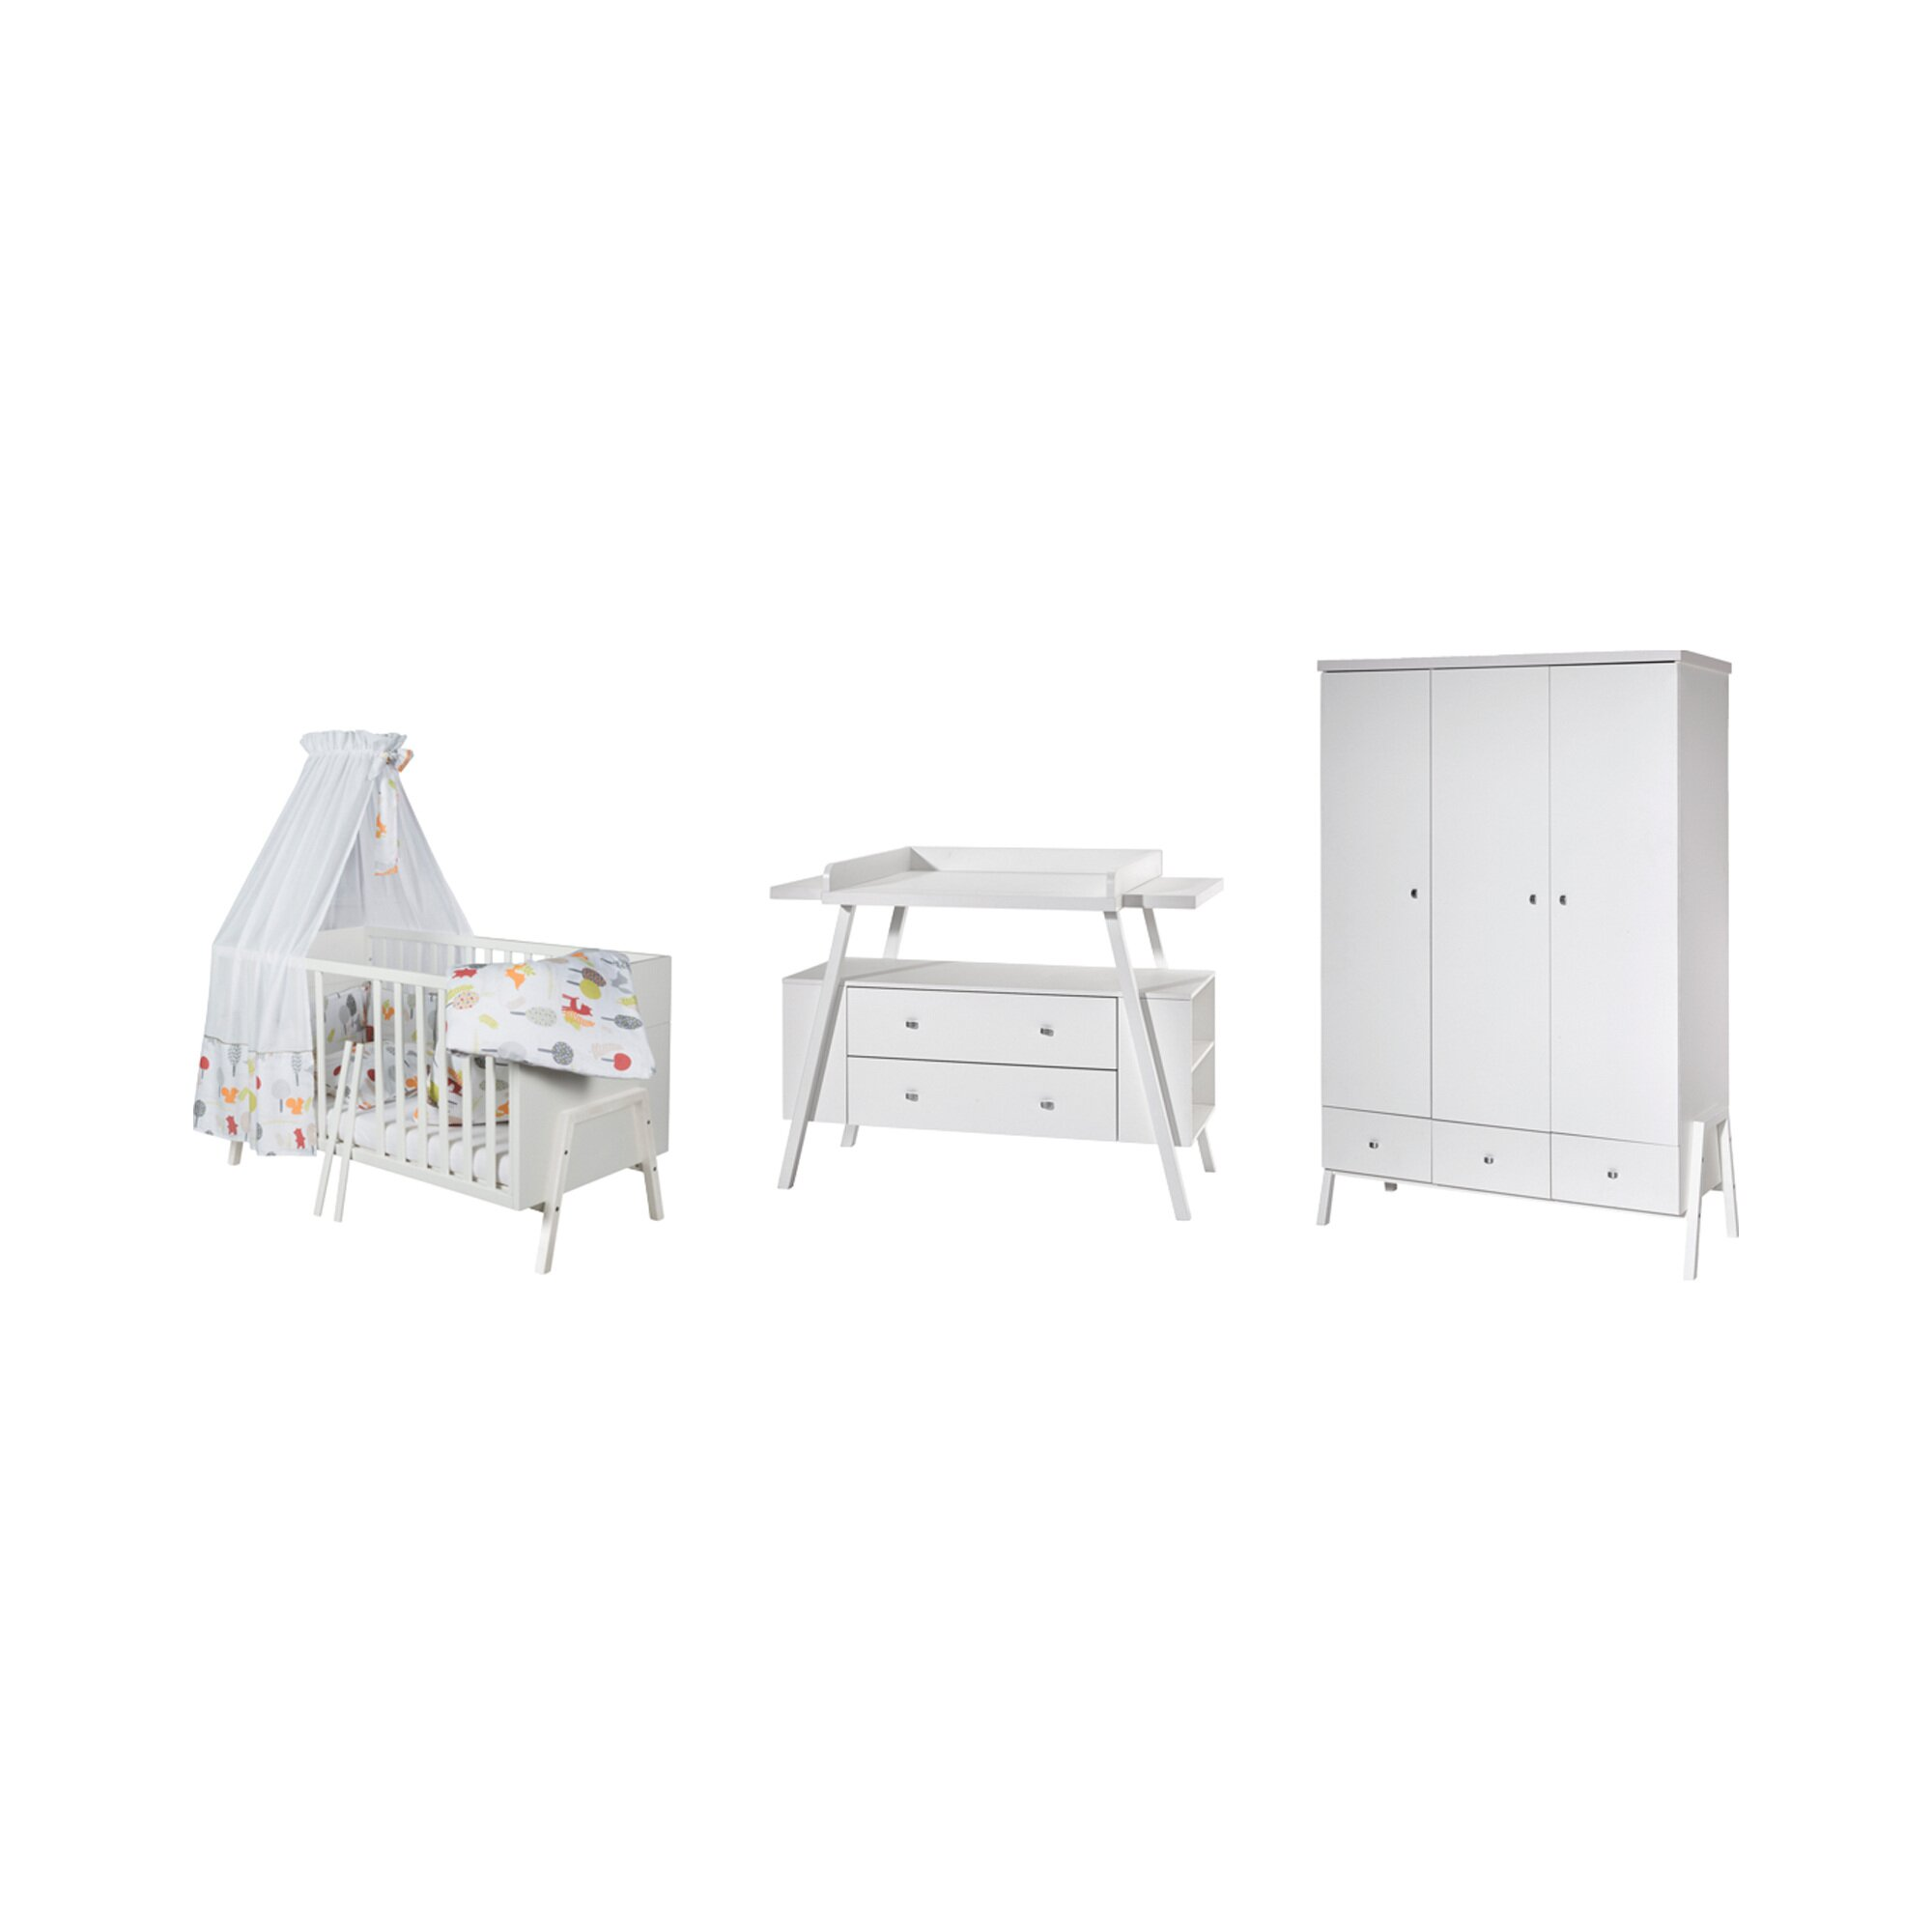 schardt-3-tlg-babyzimmer-holly-white